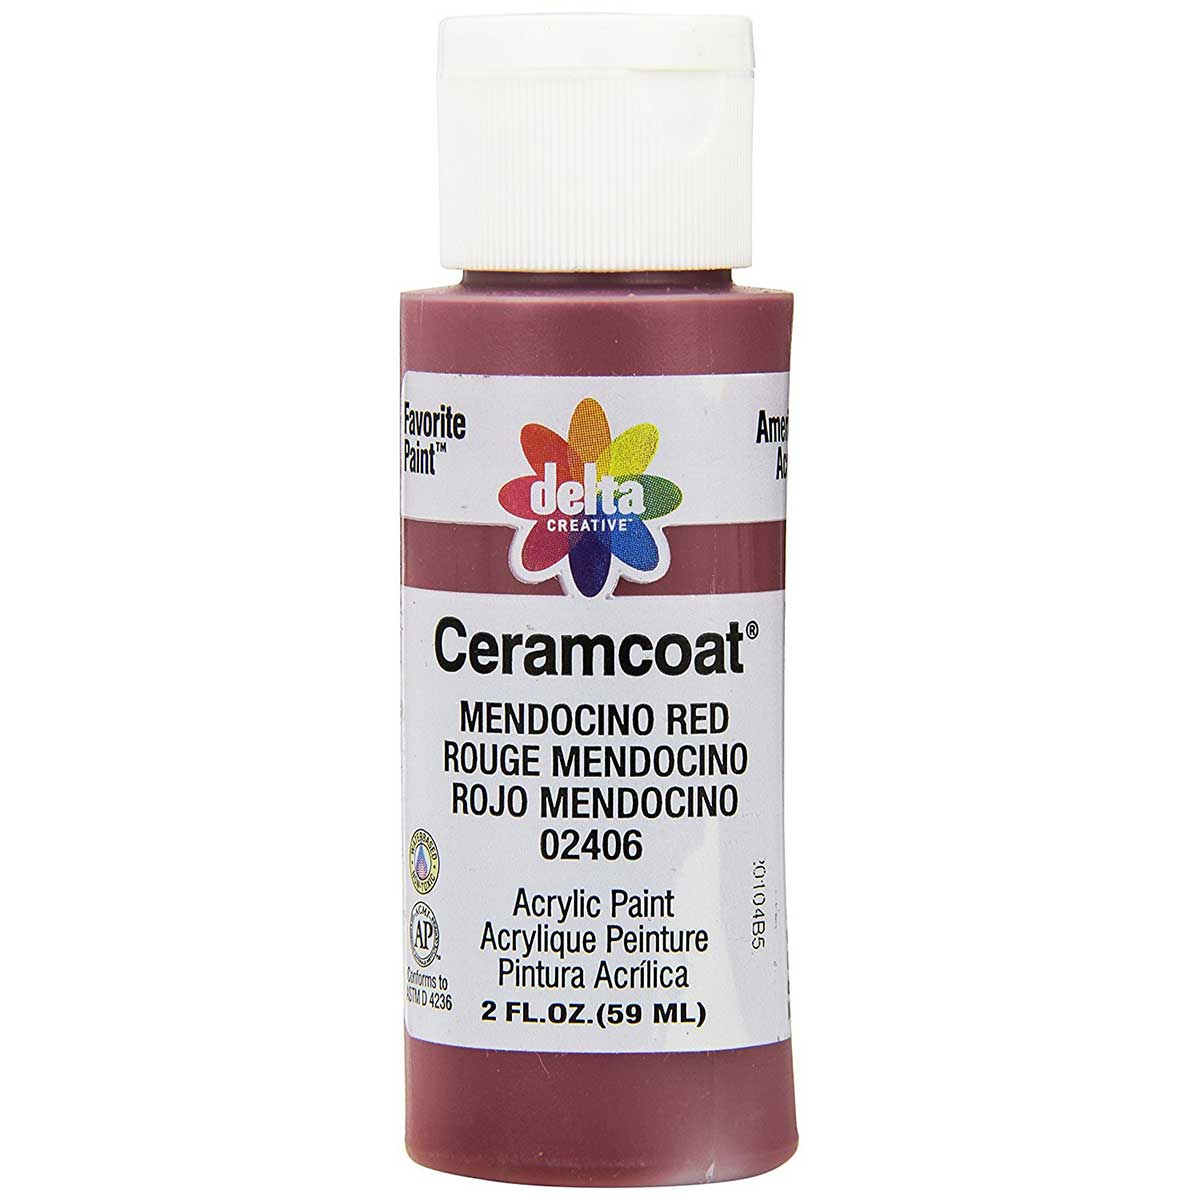 Delta Ceramcoat ® Acrylic Paint - Mendocino Red, 2 oz. - 024060202W